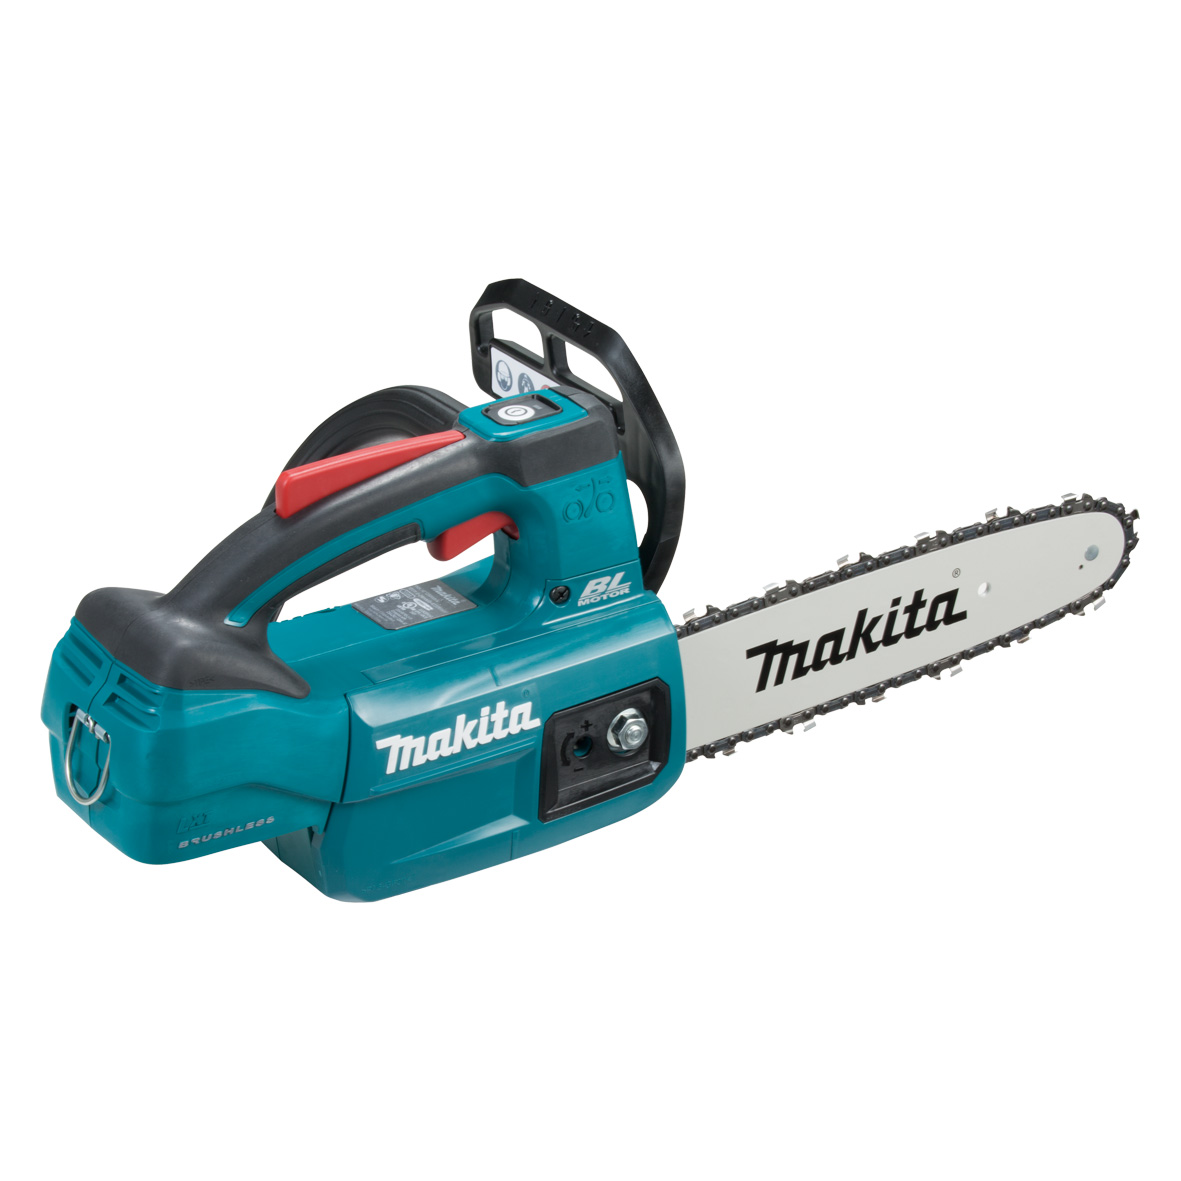 "MAKITA 18V LXT BL CHAINSAW Top 10"" - Skin only"